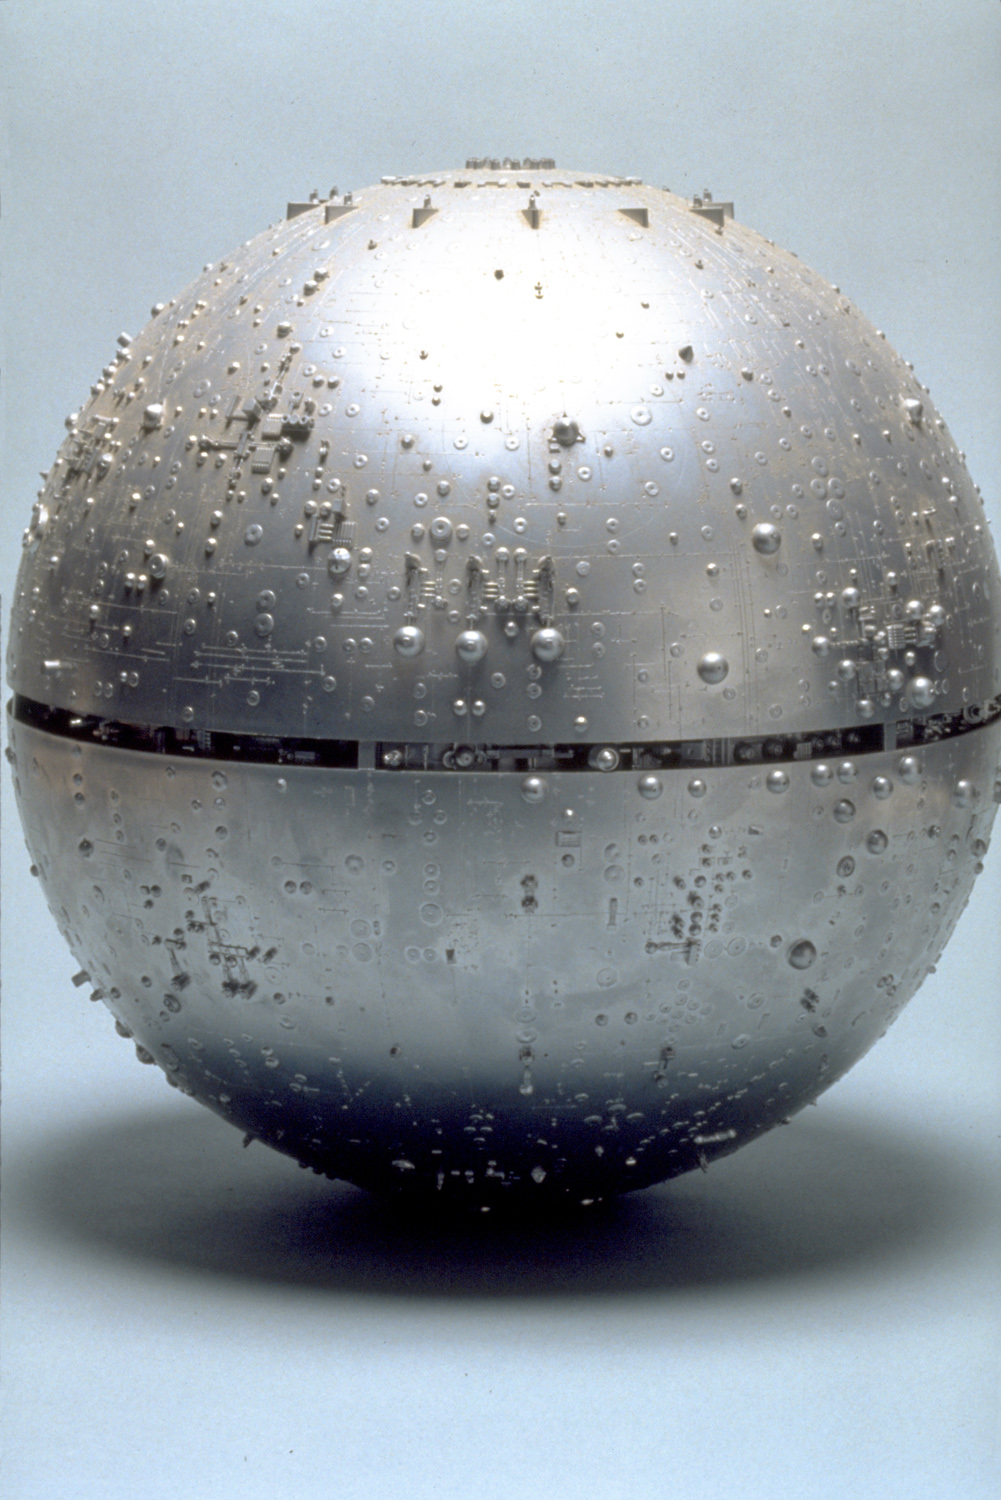 Colin Cantwell's Death Star.